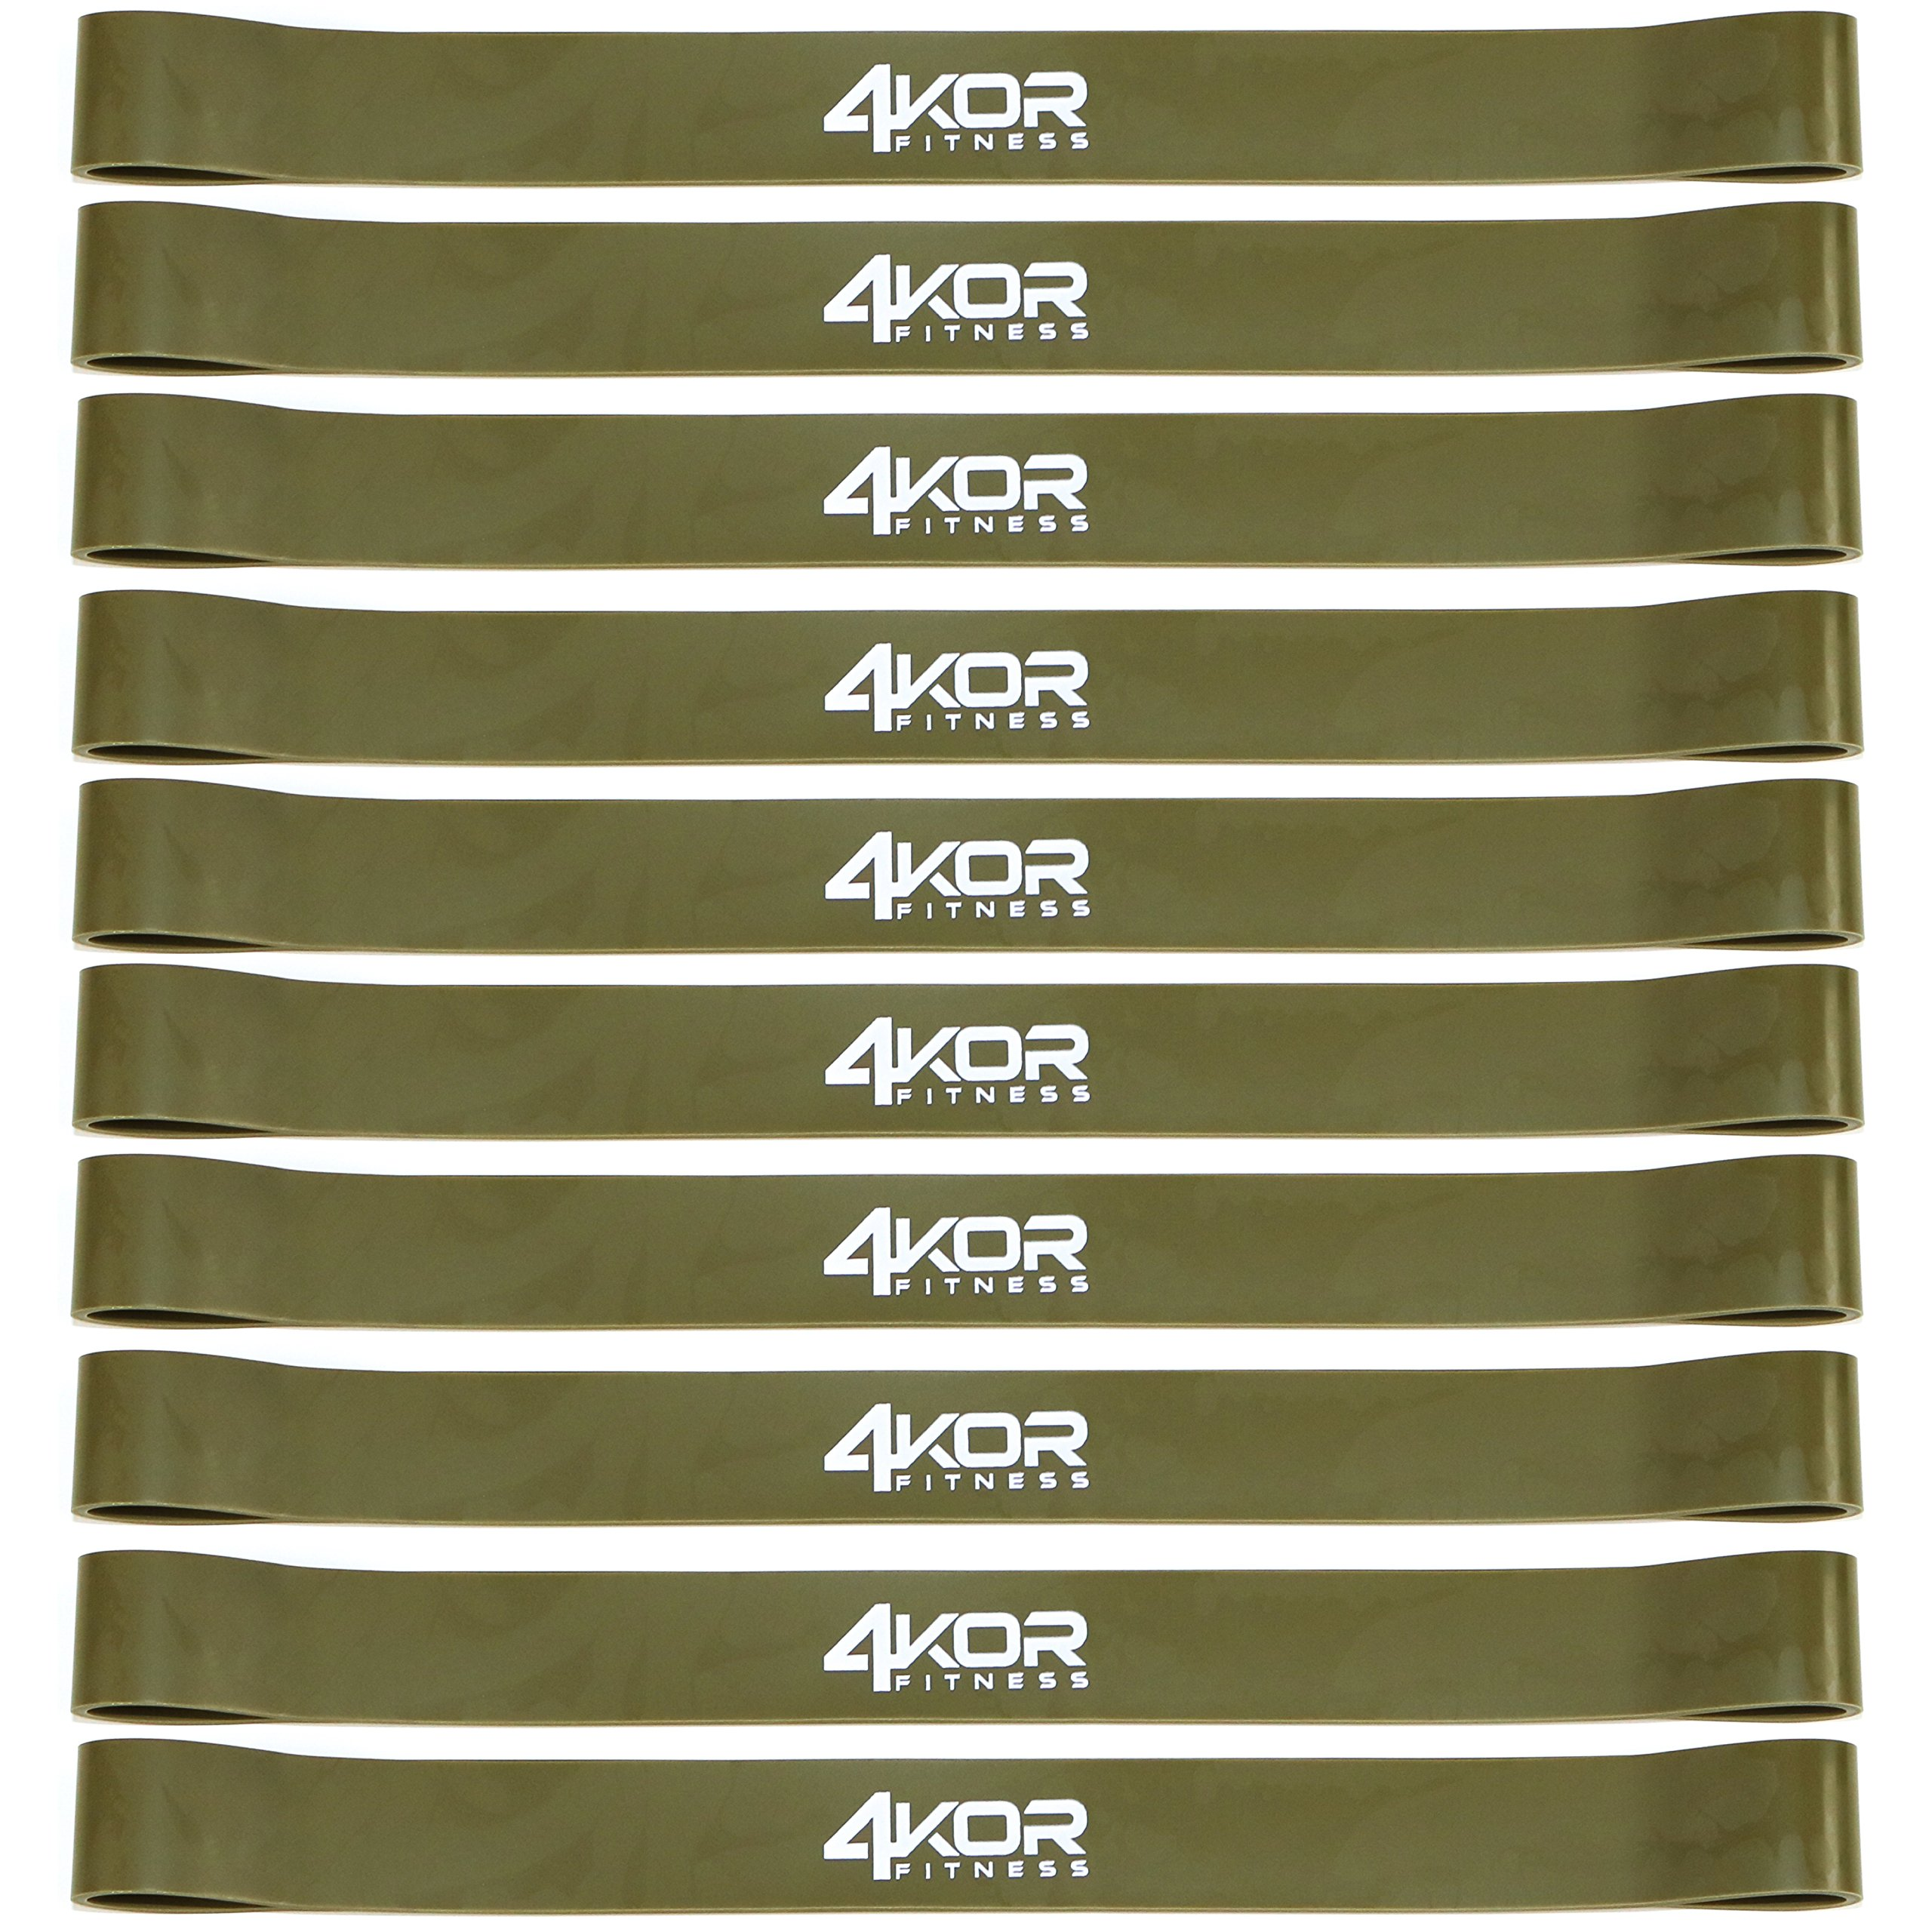 4KOR Fitness Resistance Loop Band Set, Perfect for Crossfit, Yoga, Physical Therapy, and Booty Building (Set of 10 Extra Thick 1.0'' Wide/Tan)